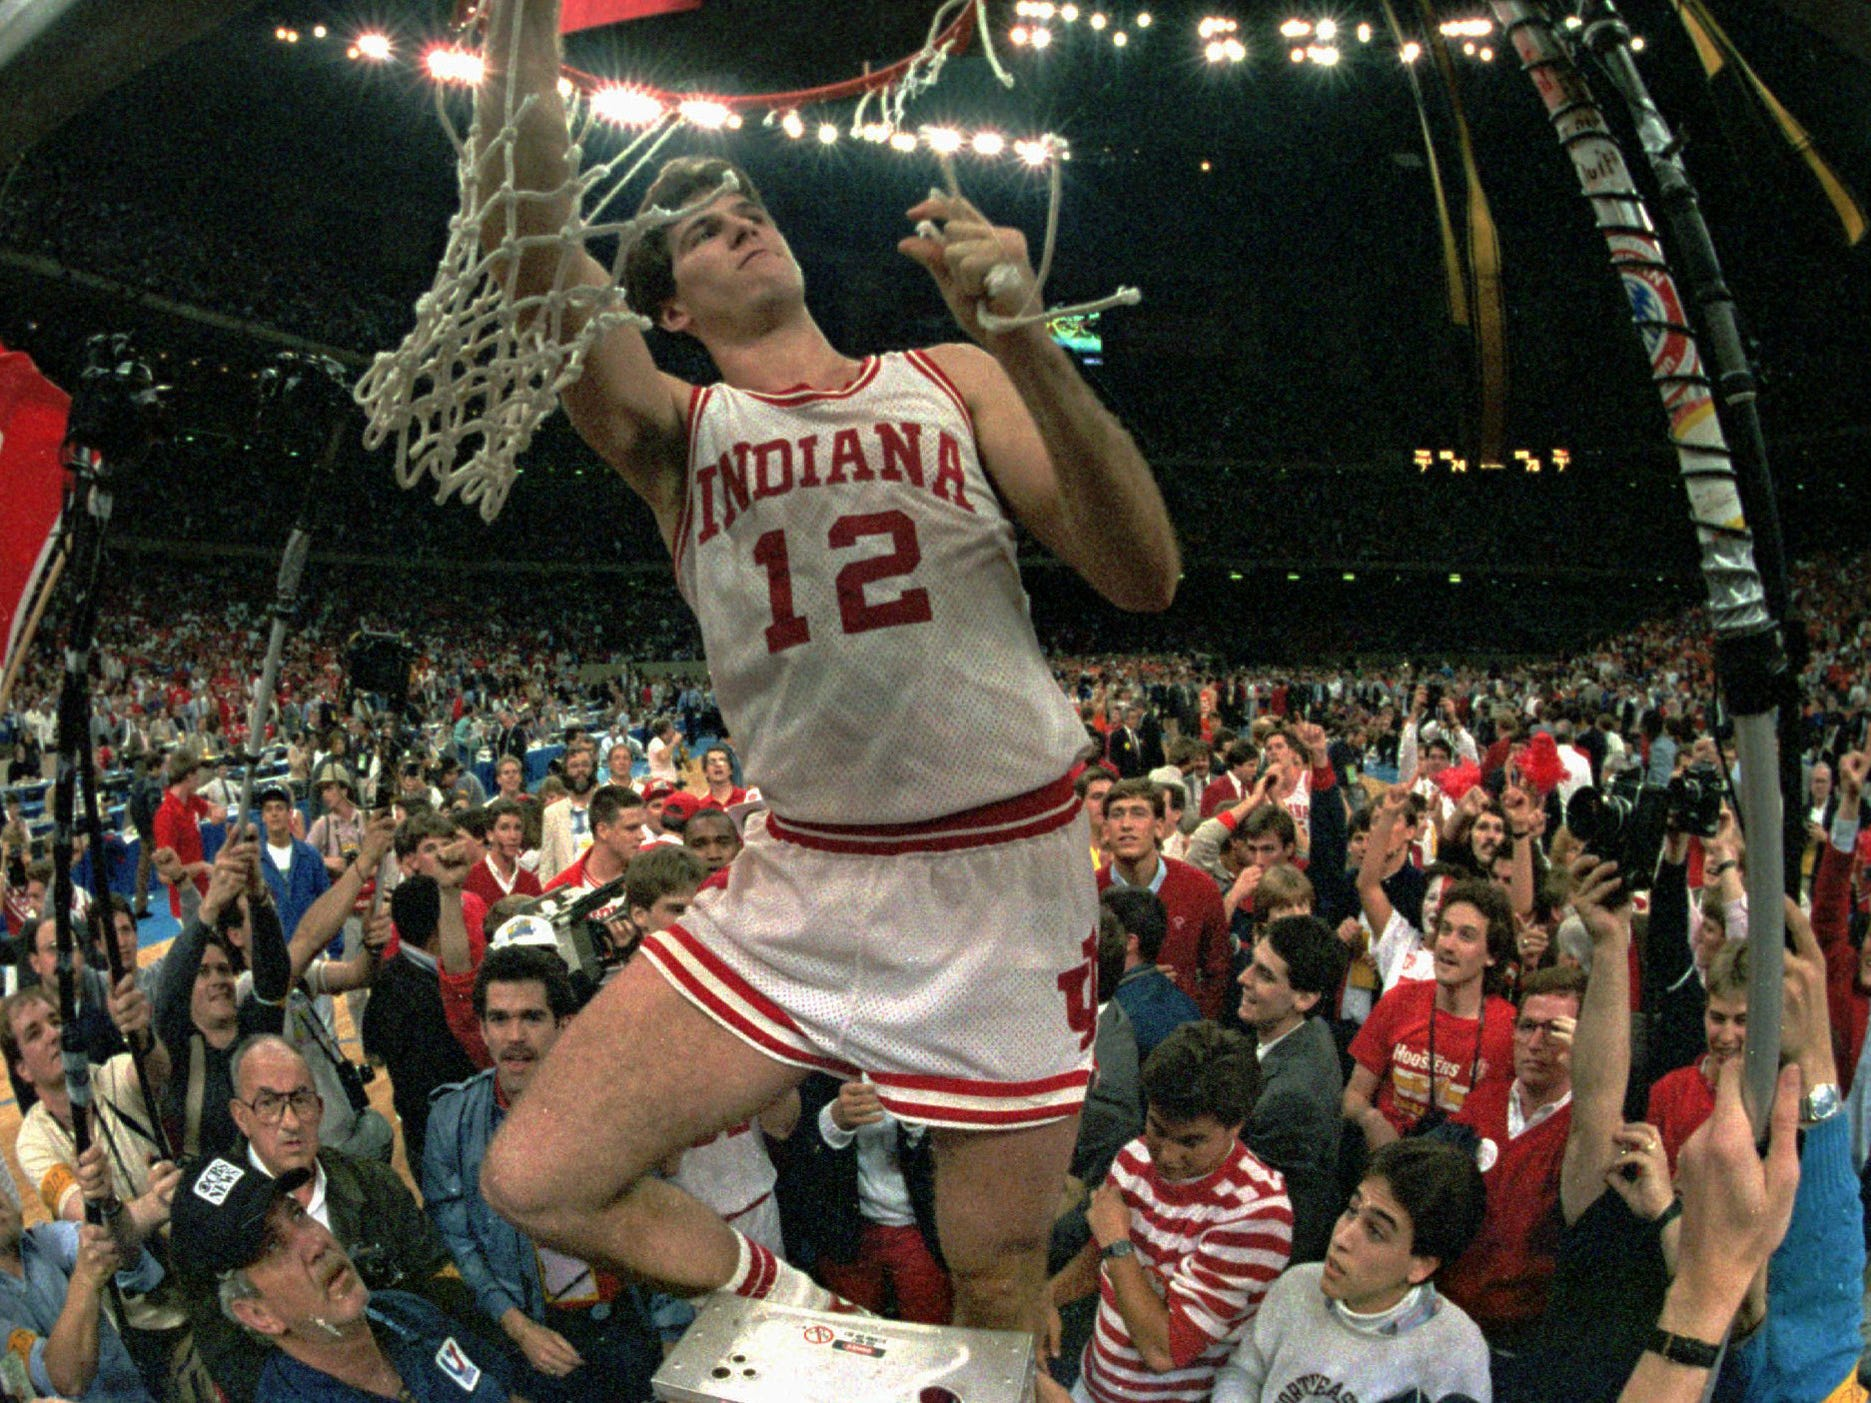 Indiana's Steve Alford cuts the net March 30 1987 at the Superdome after Indiana defeated Syracuse for the NCAA championship in New Orleans.